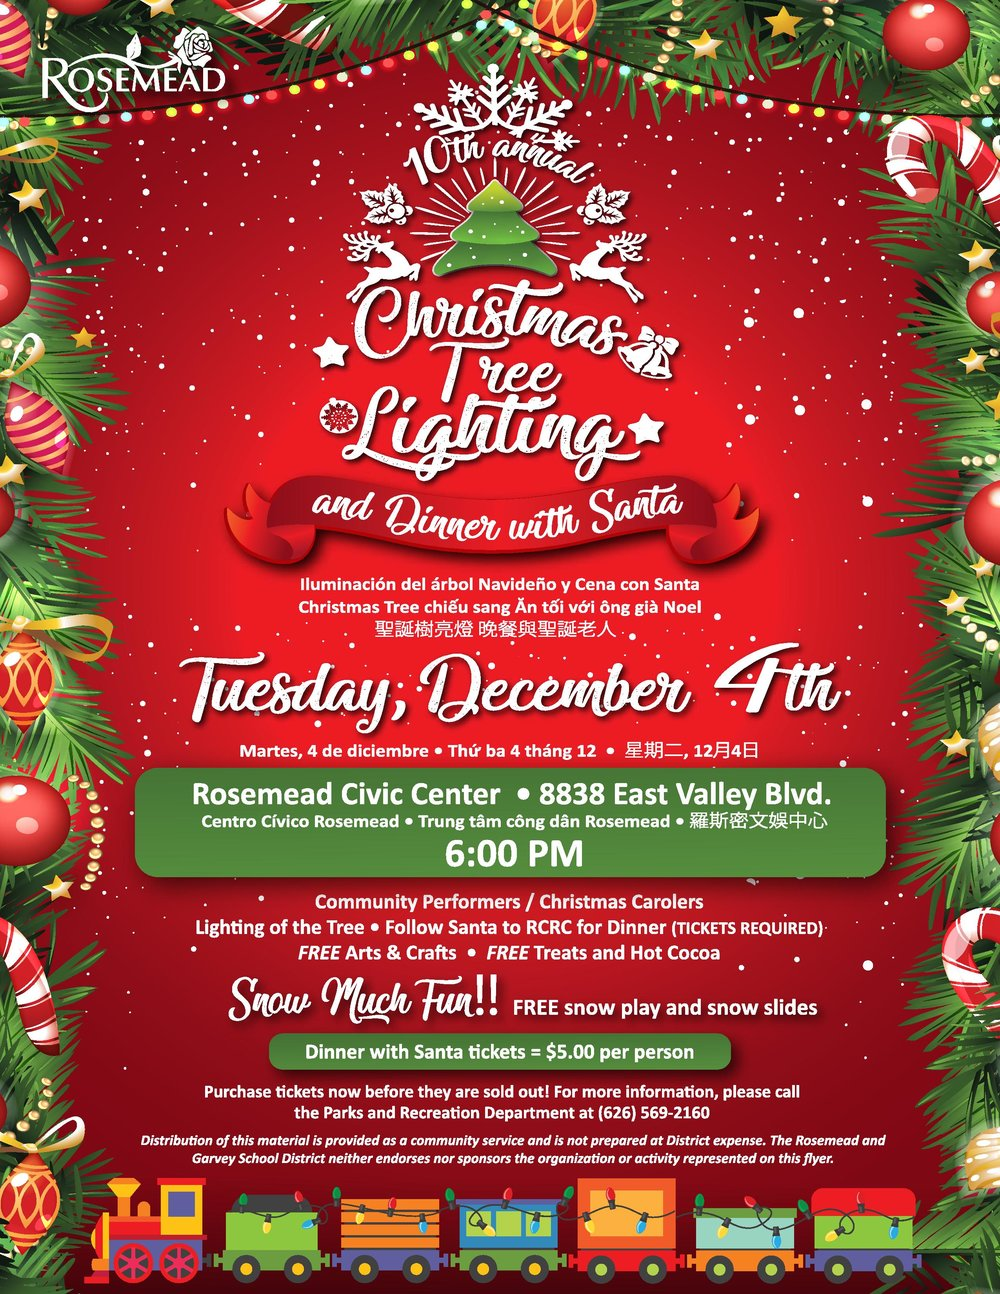 christmas tree lighting and dinner with santa - December 4th, 2018